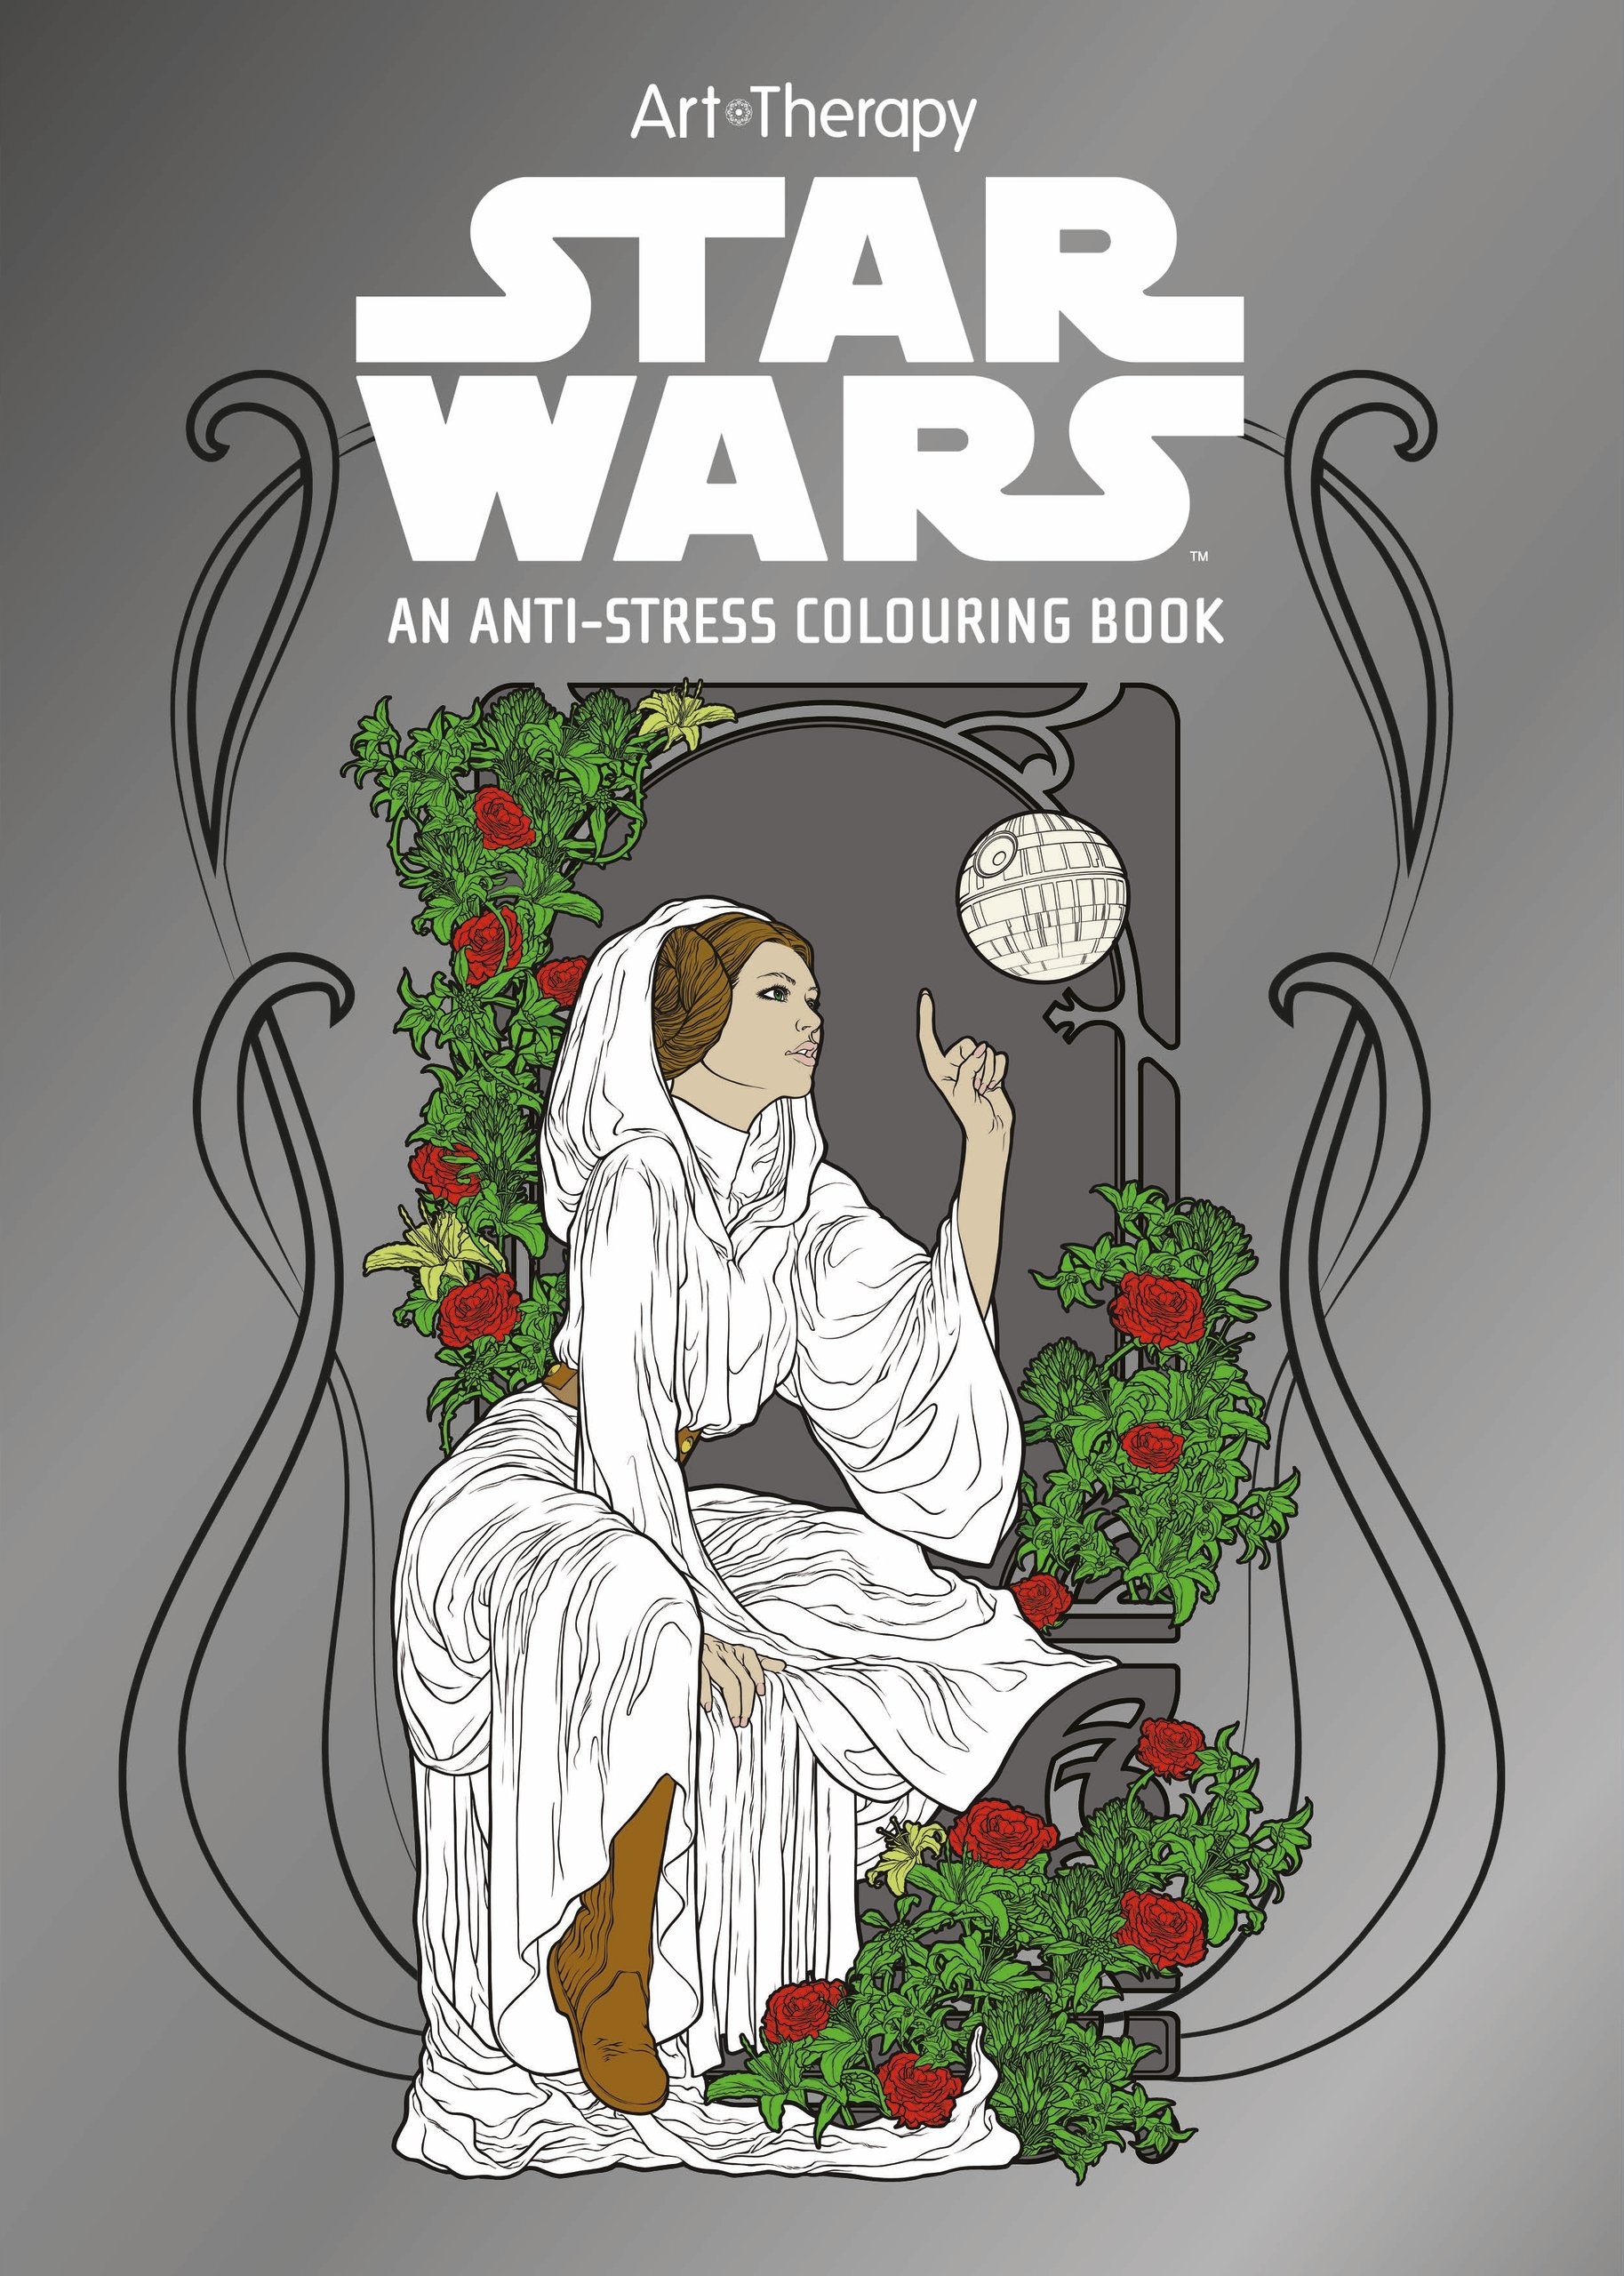 star wars art therapy colouring book lucasfilm ltd 9781405279918